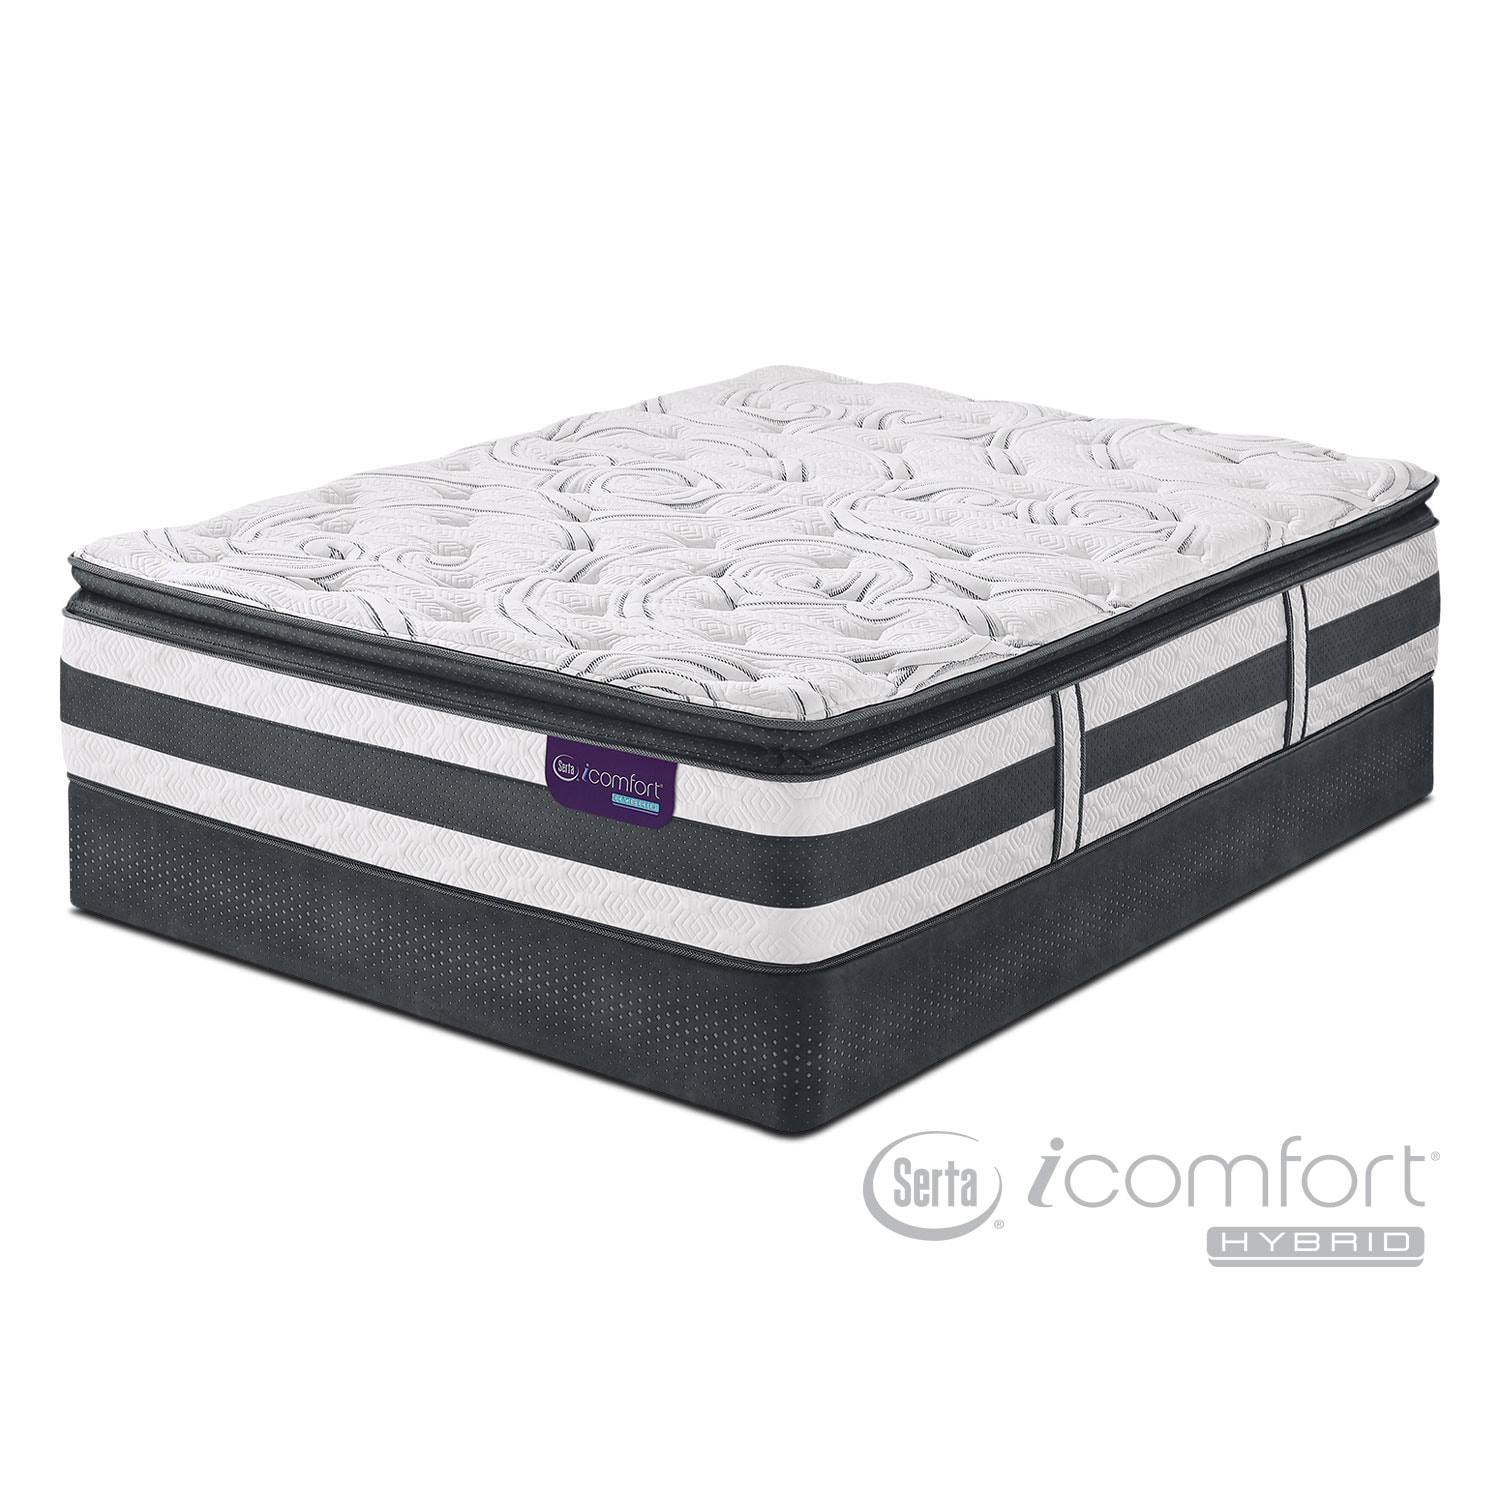 Mattresses and Bedding - Observer Queen Mattress/Low-Profile Foundation Set